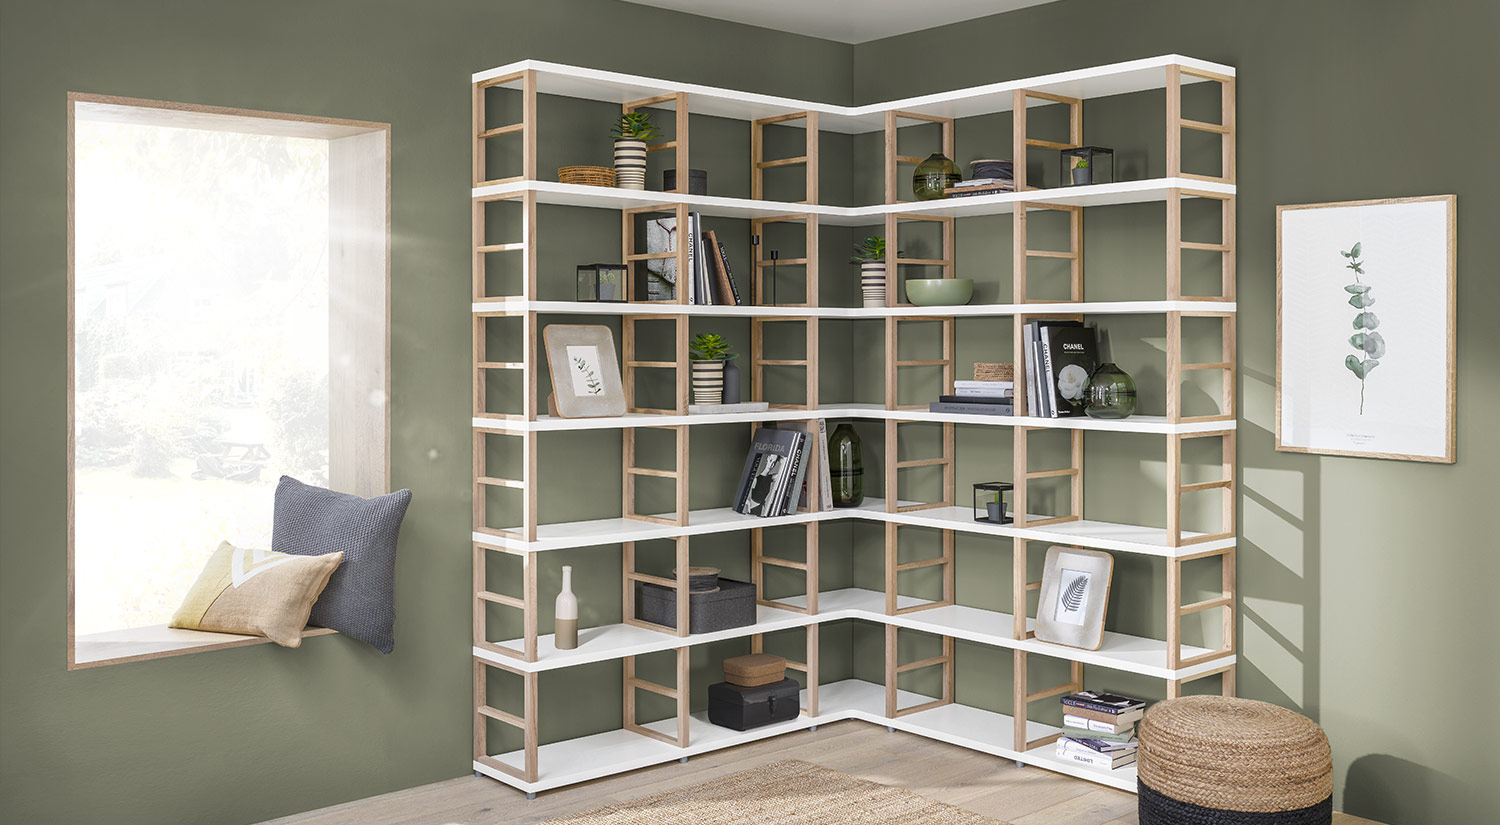 Corner shelf - MAXX Shelving System book shelf